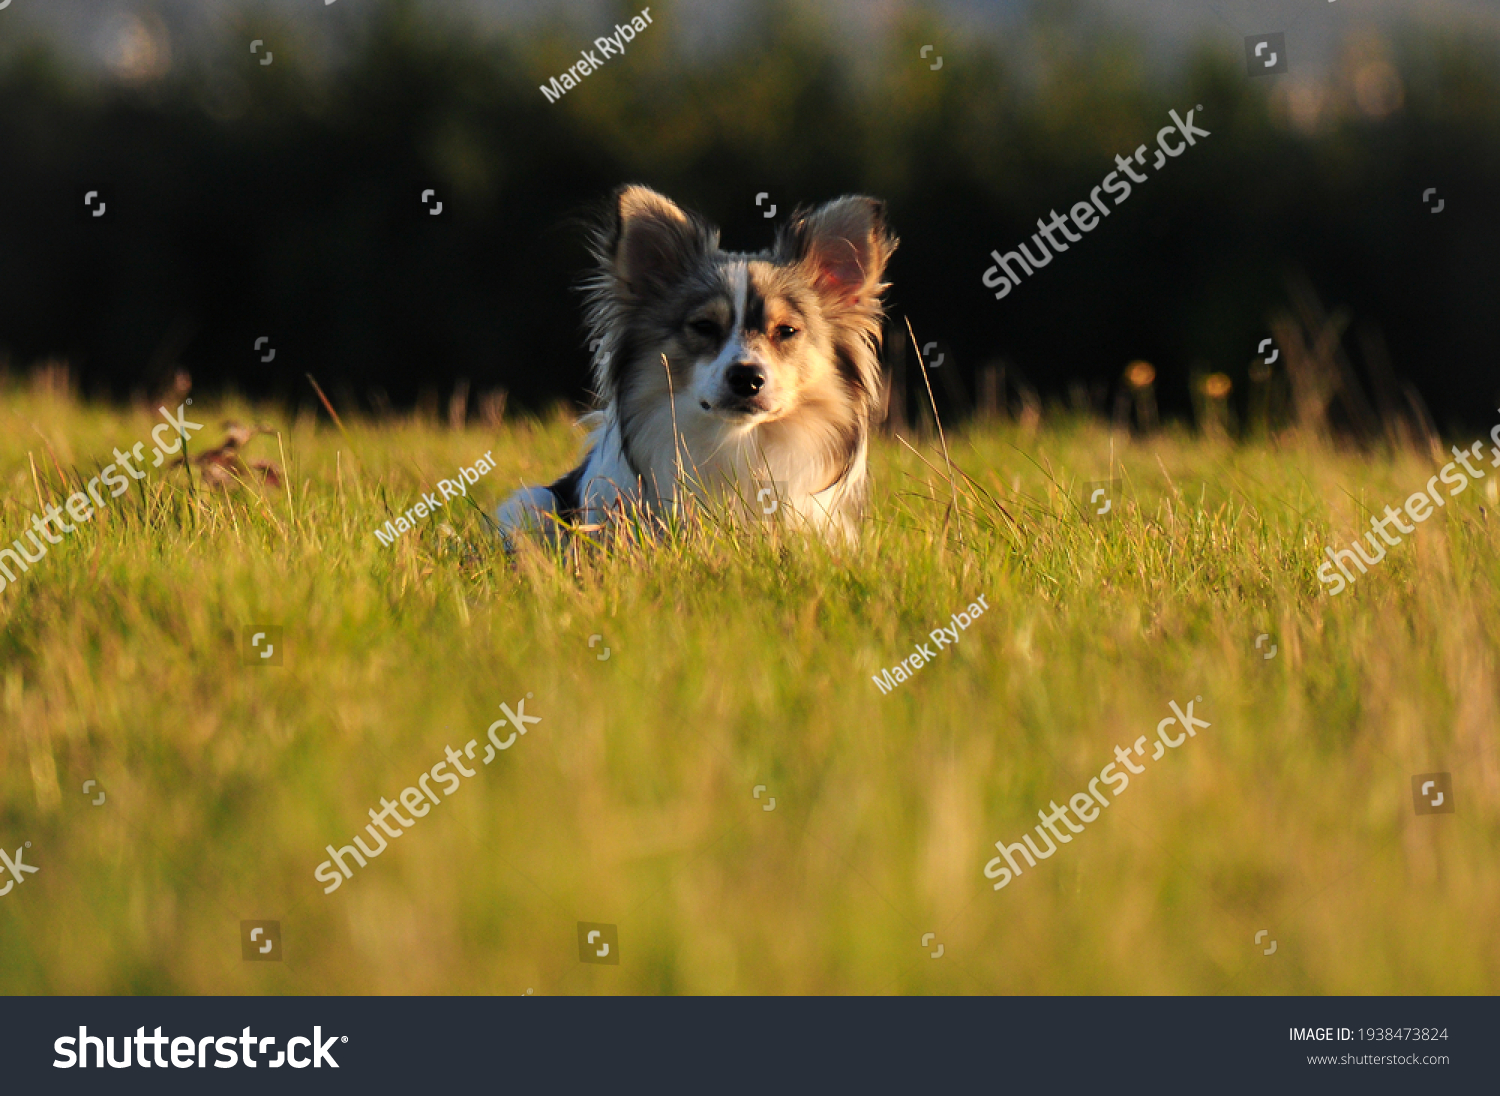 stock-photo-young-dog-in-the-field-with-